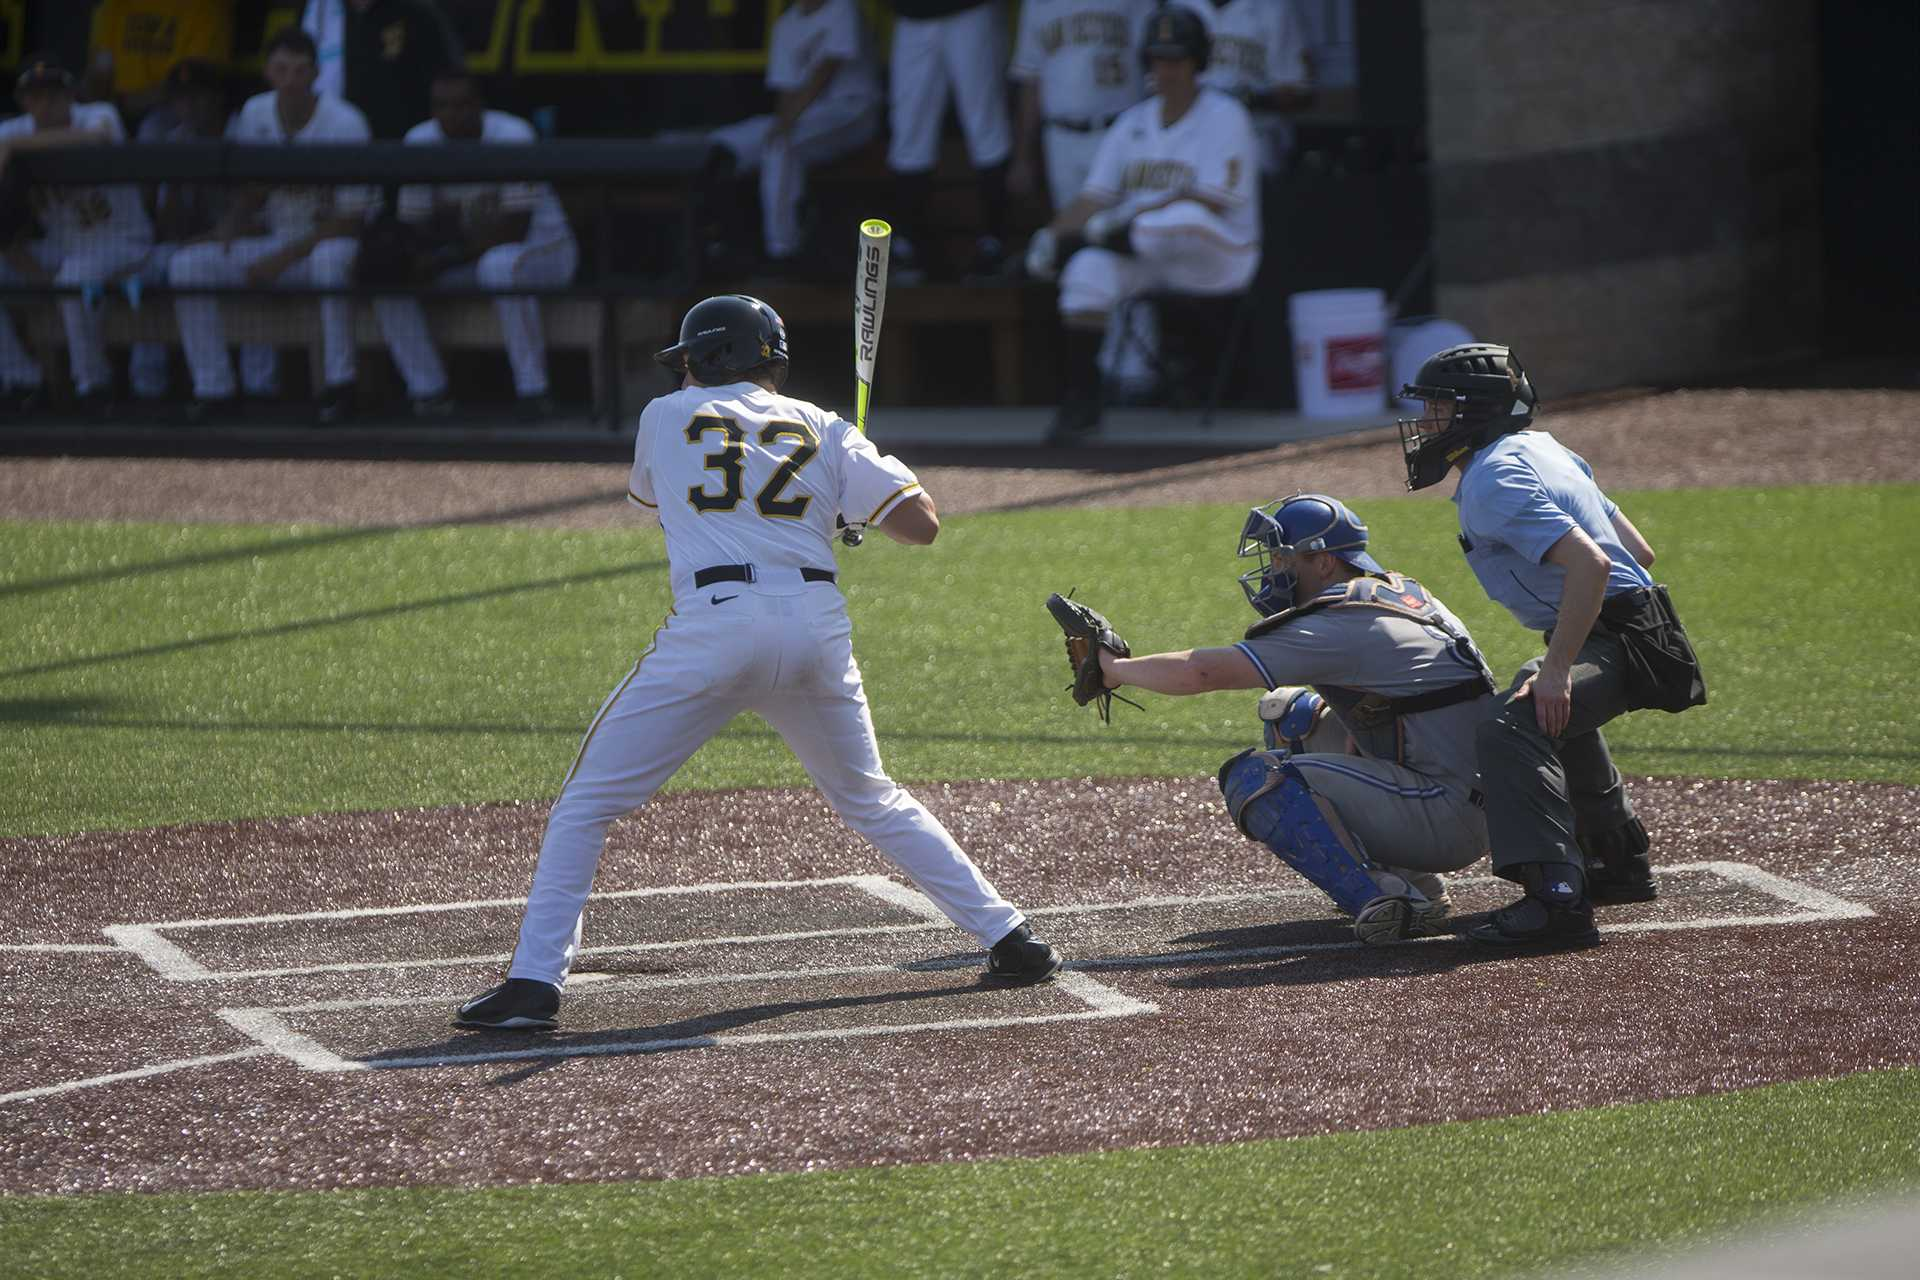 Iowa catcher Brett McCleary bats during the Iowa/Ontario baseball game at Duane Banks Field on Saturday, Sept. 23, 2017. The Hawkeyes defeated the Blue Jays, 14-3. (Lily Smith/The Daily Iowan)